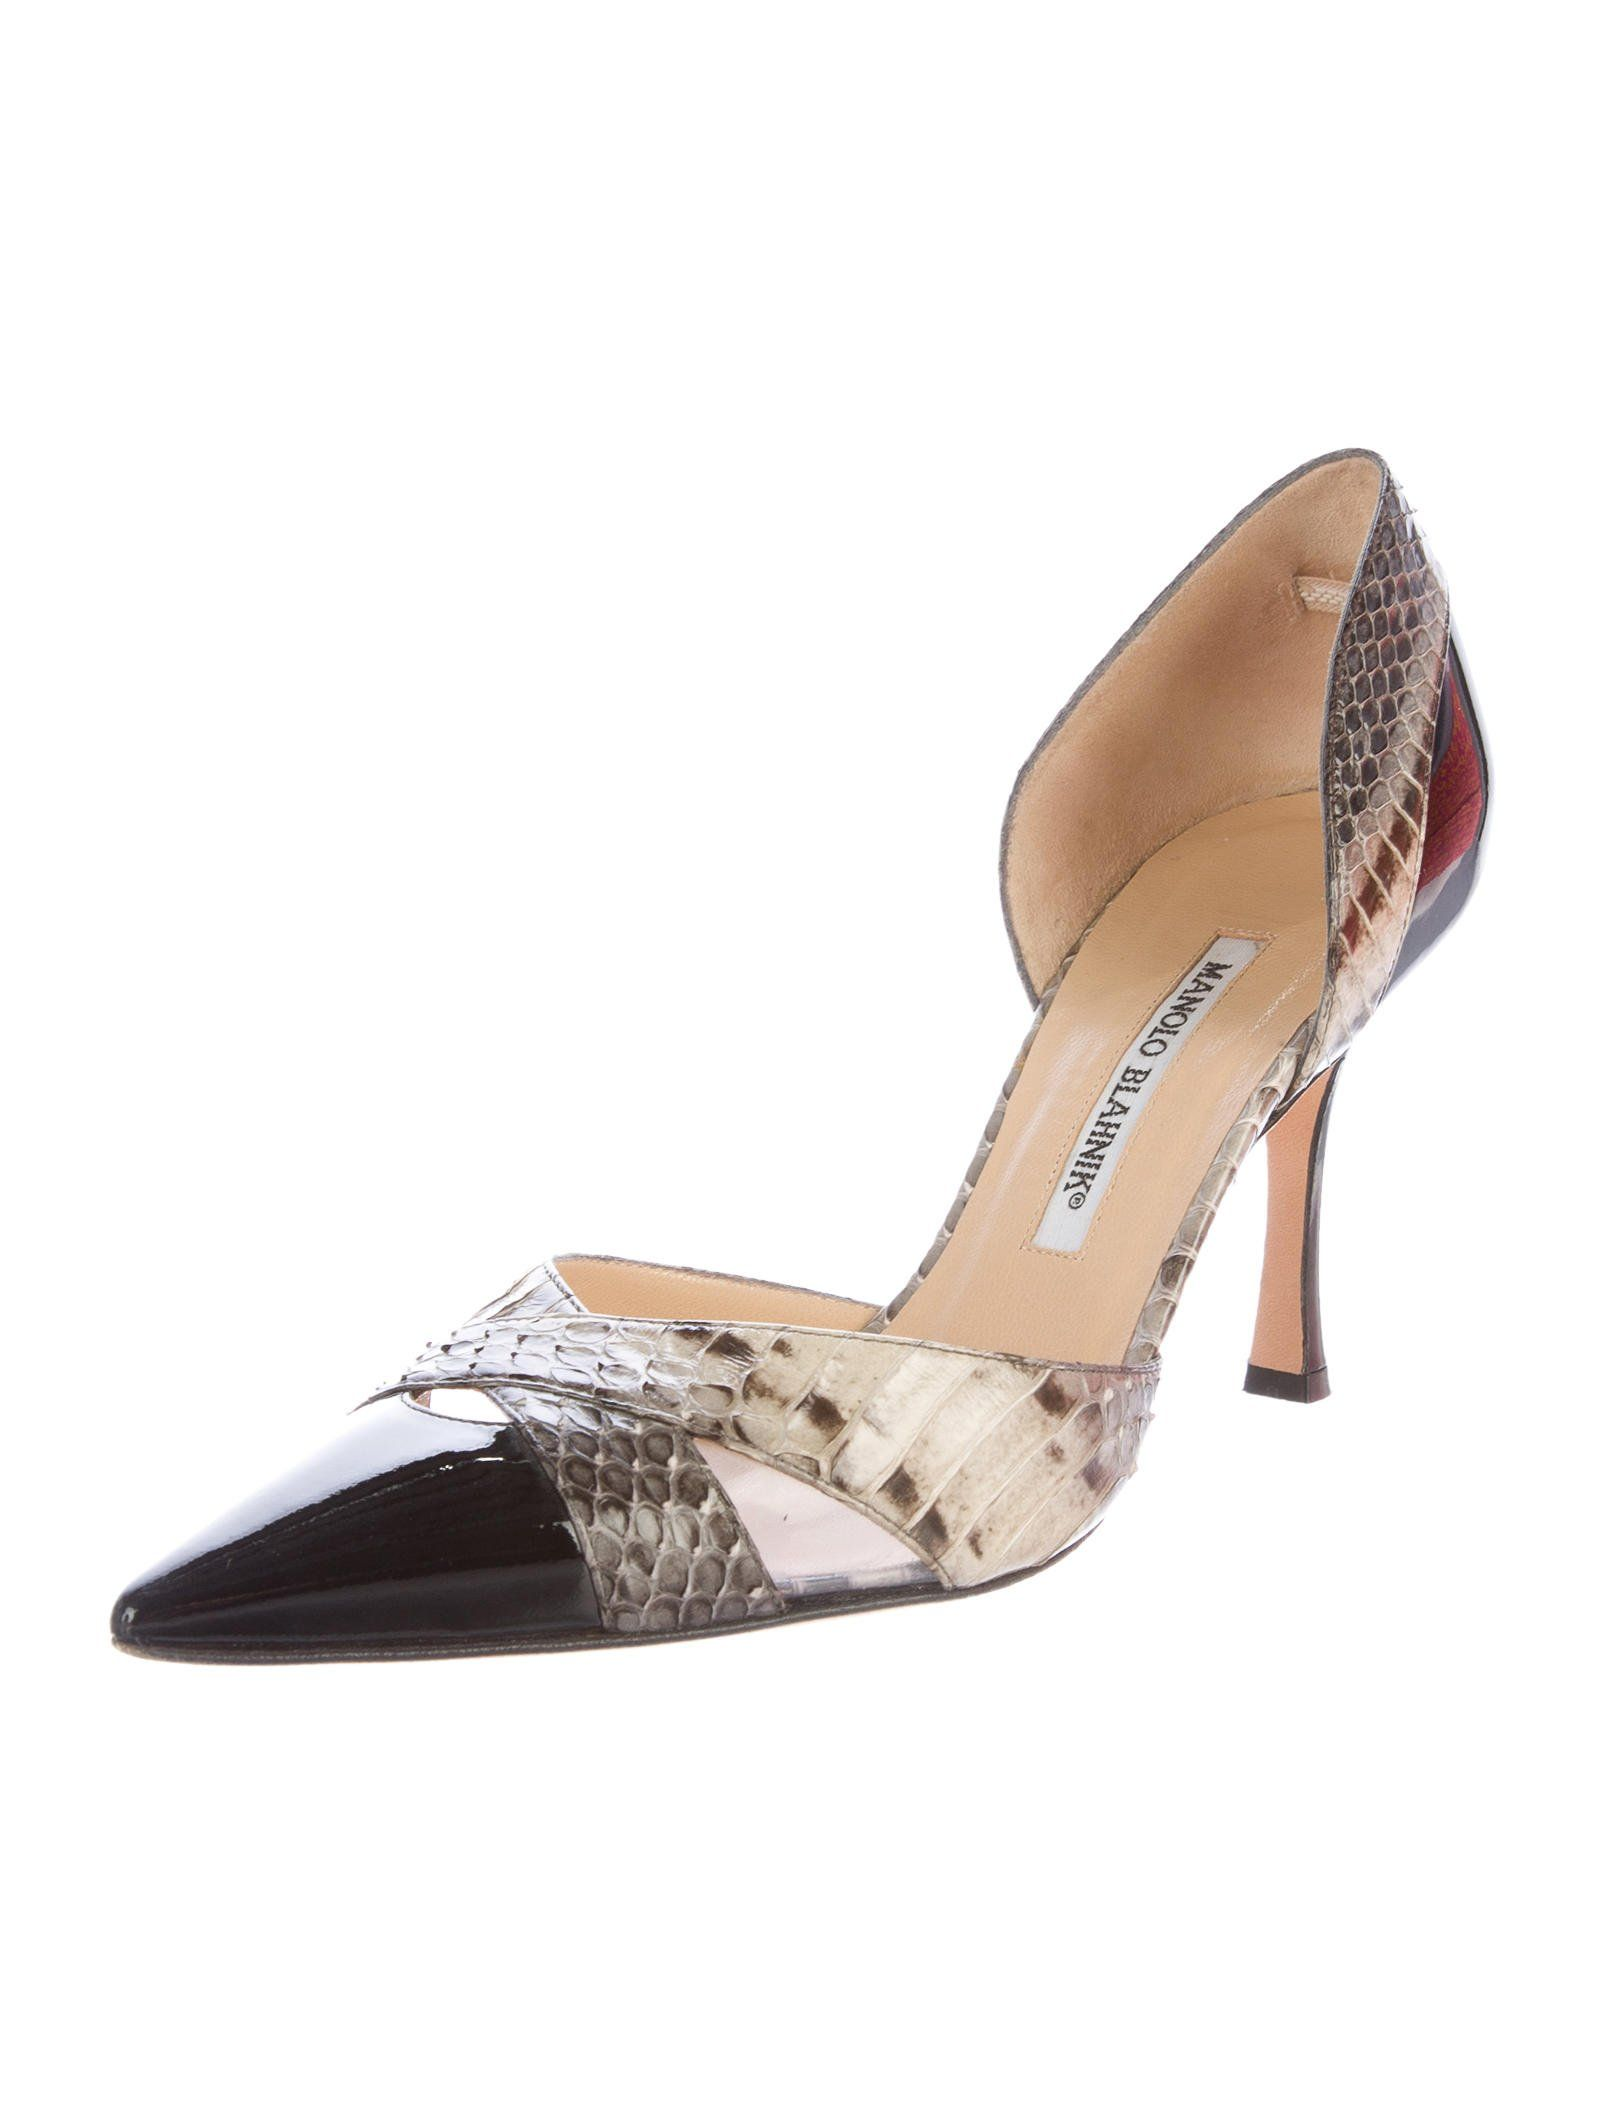 Manolo Blahnik Python-Trimmed Slingback Booties clearance store sale online free shipping low shipping fast delivery sale online hlcyk88M